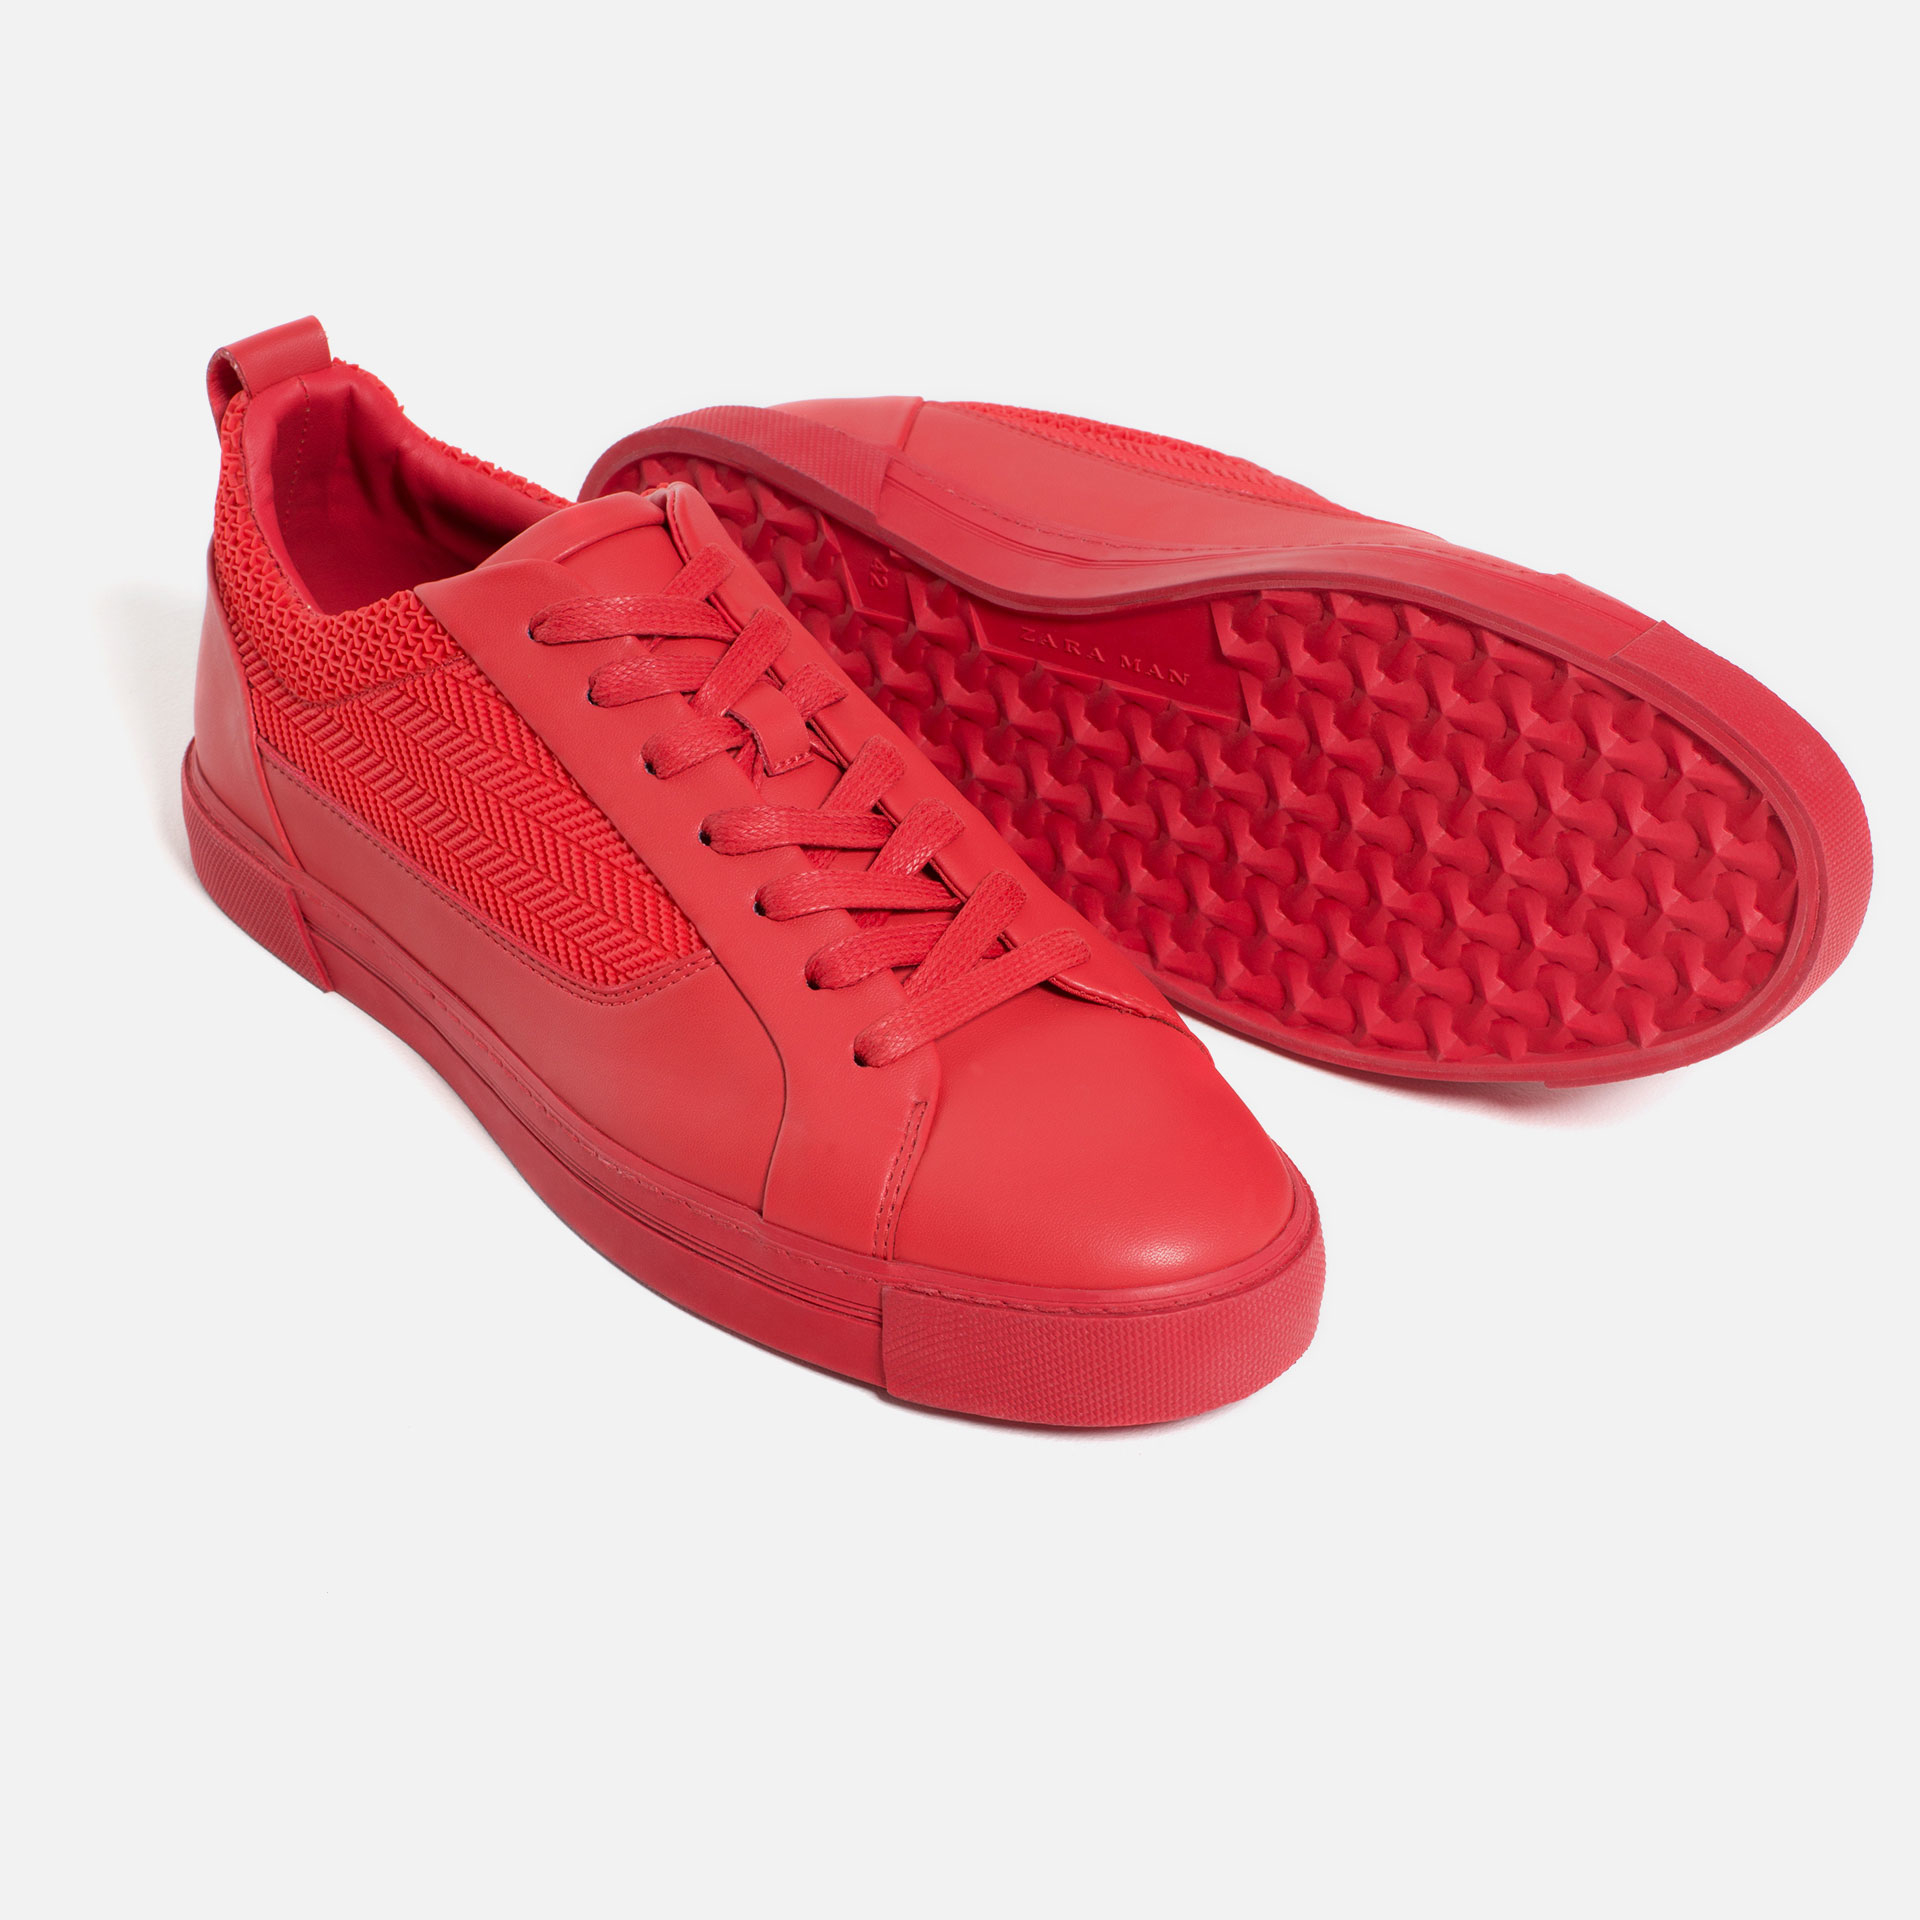 Zara Red Sole Shoes